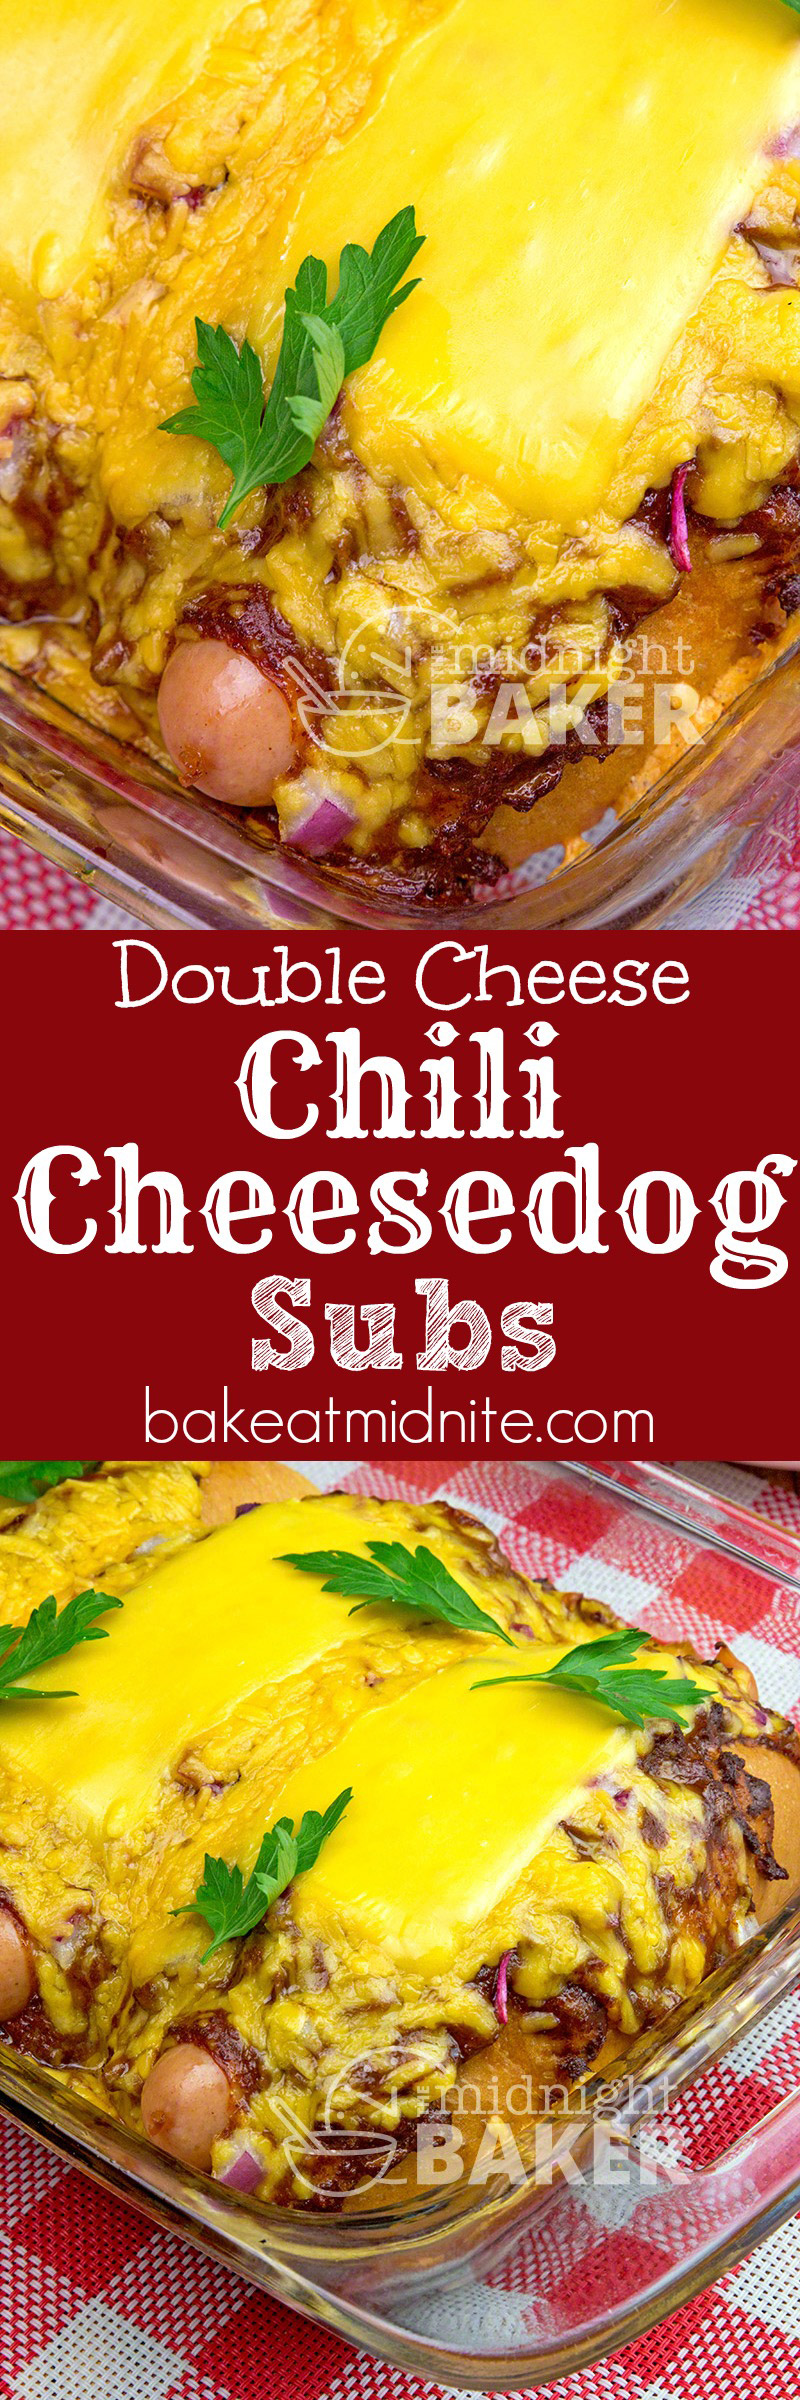 King of the chili cheesedog has double the cheese and baked in a sub roll.